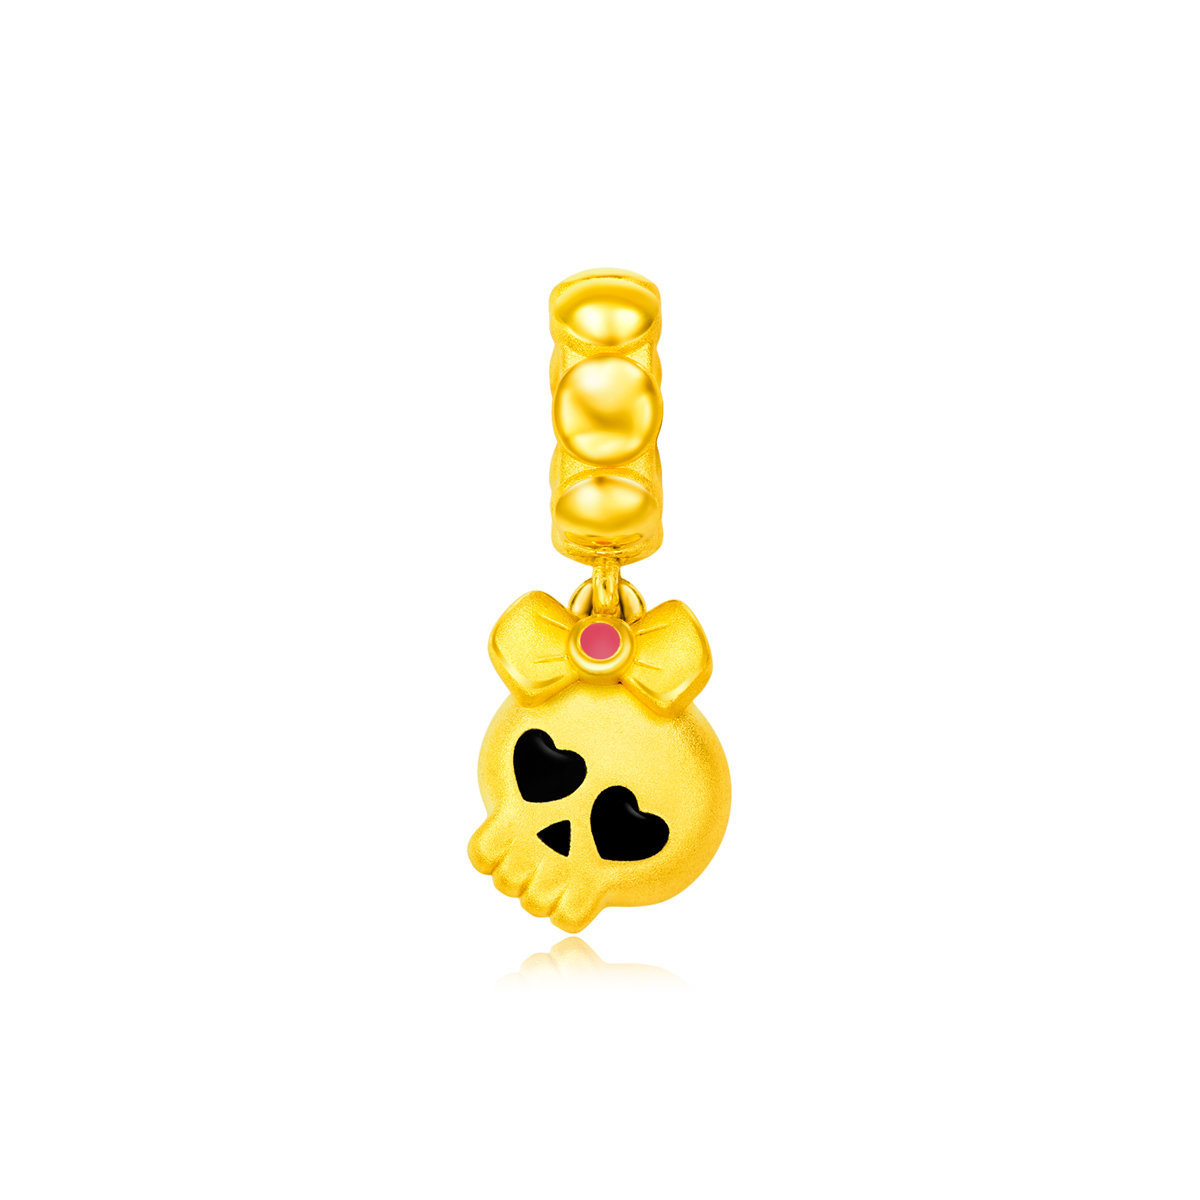 999 Gold Charm (with String)